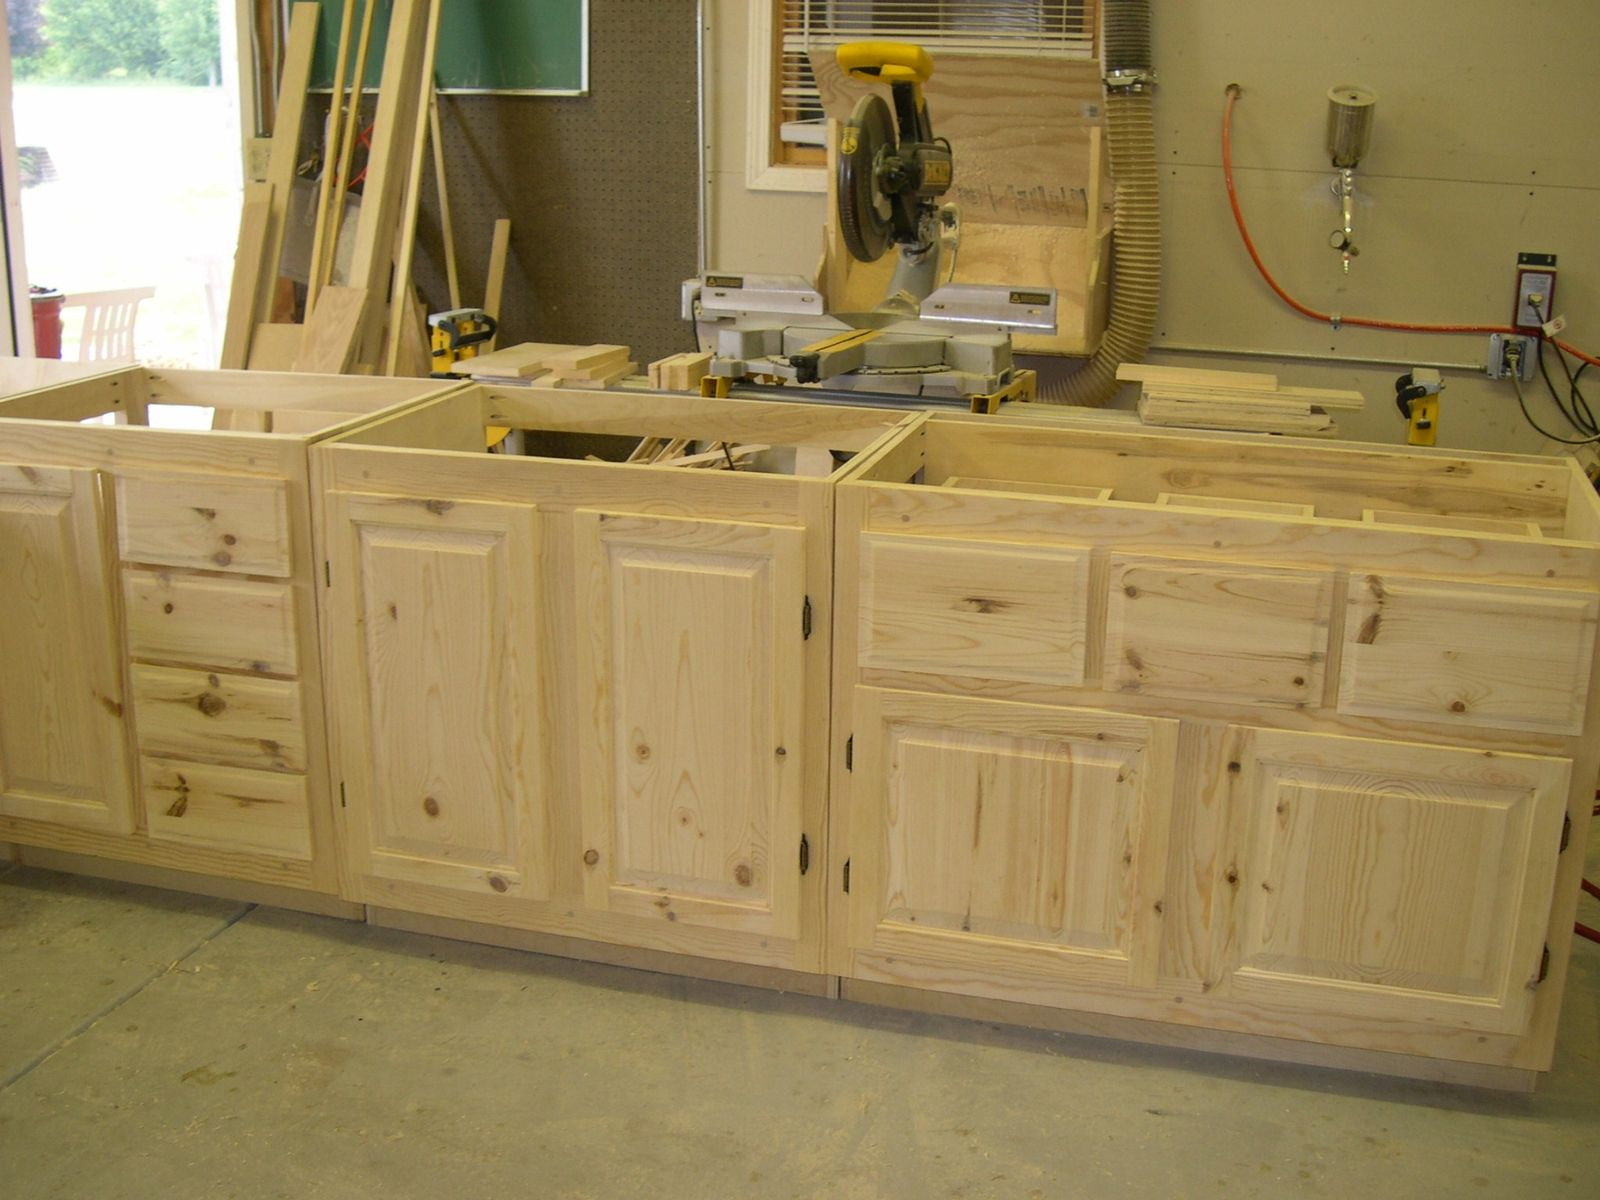 Custom Made Cabinets Handmade Knotty Pine Cabinets By Pureamerican Creations